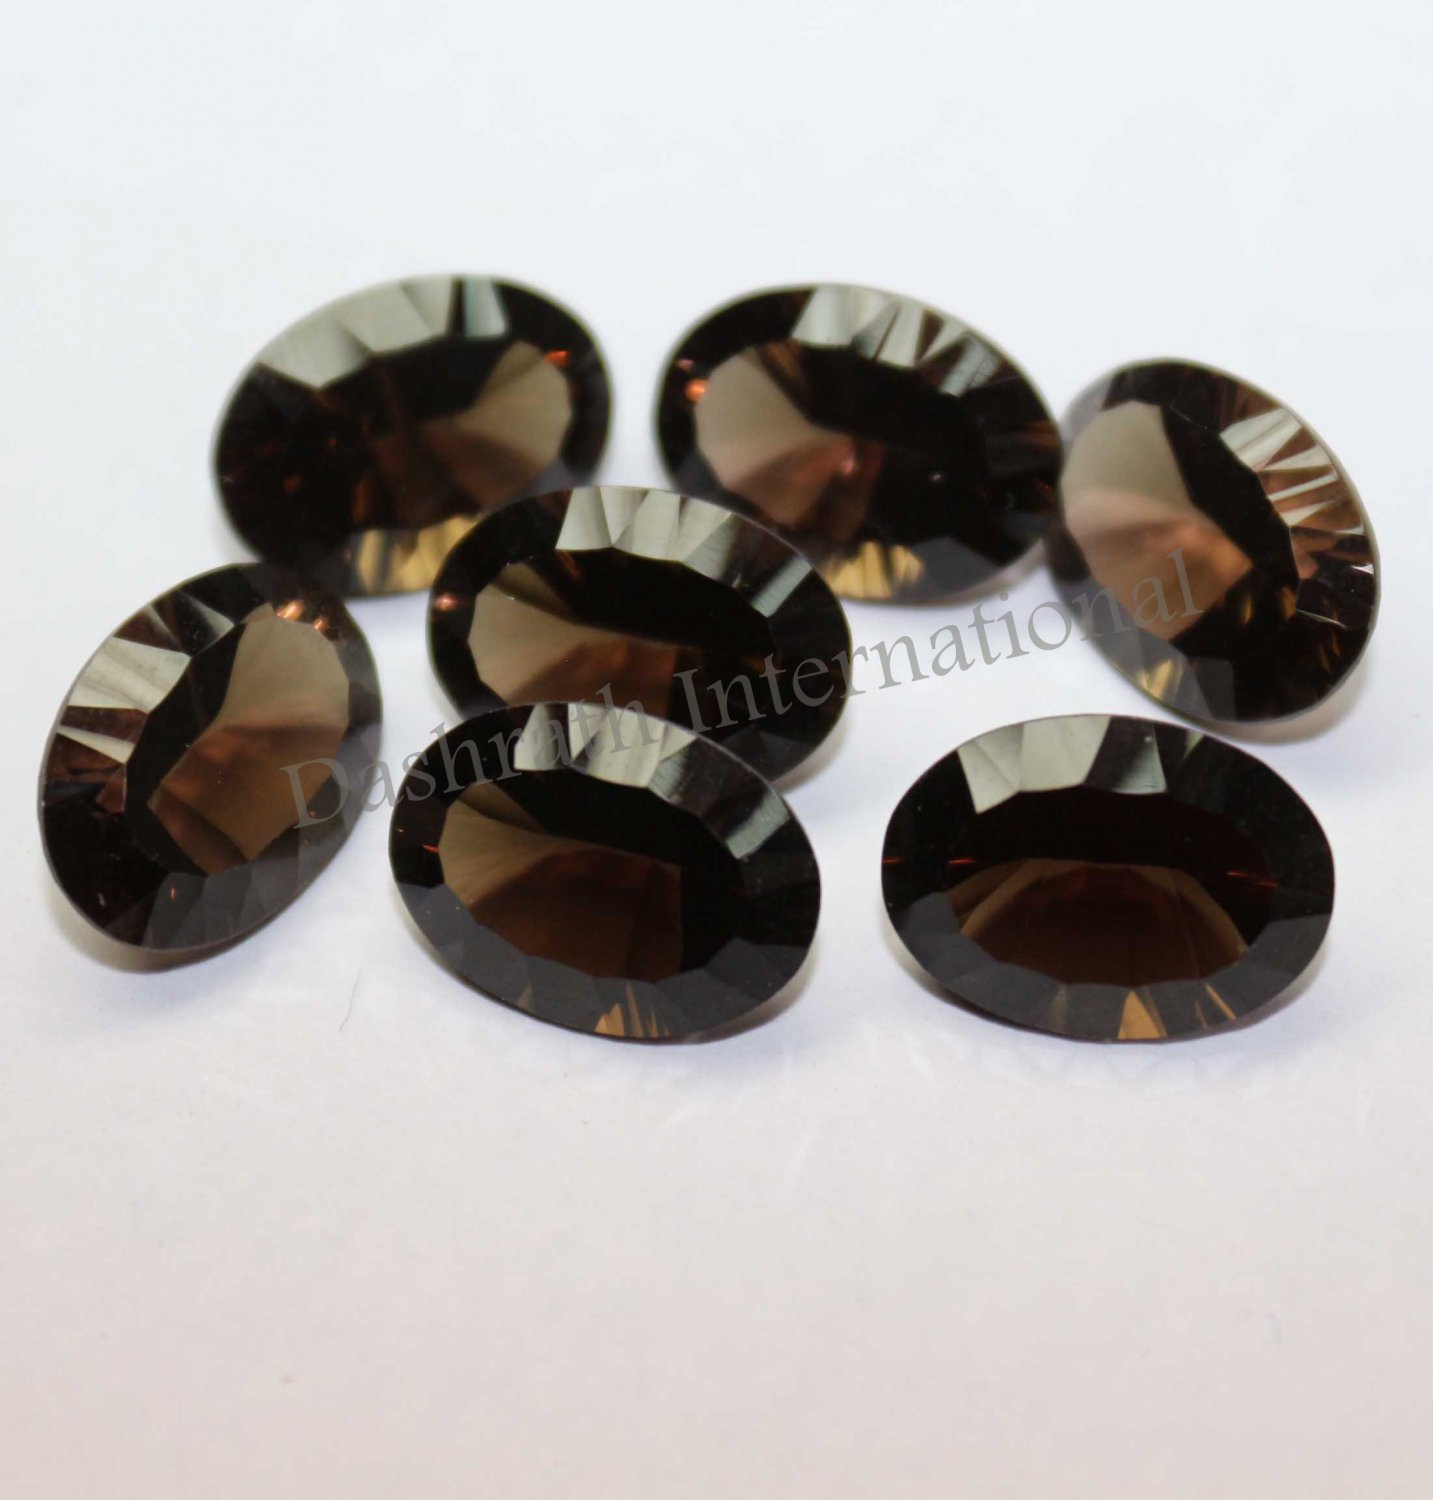 15x20mm Natural Smoky Quartz Concave Cut  Oval 5 Pieces Lot (SI) Top Quality  Loose Gemstone